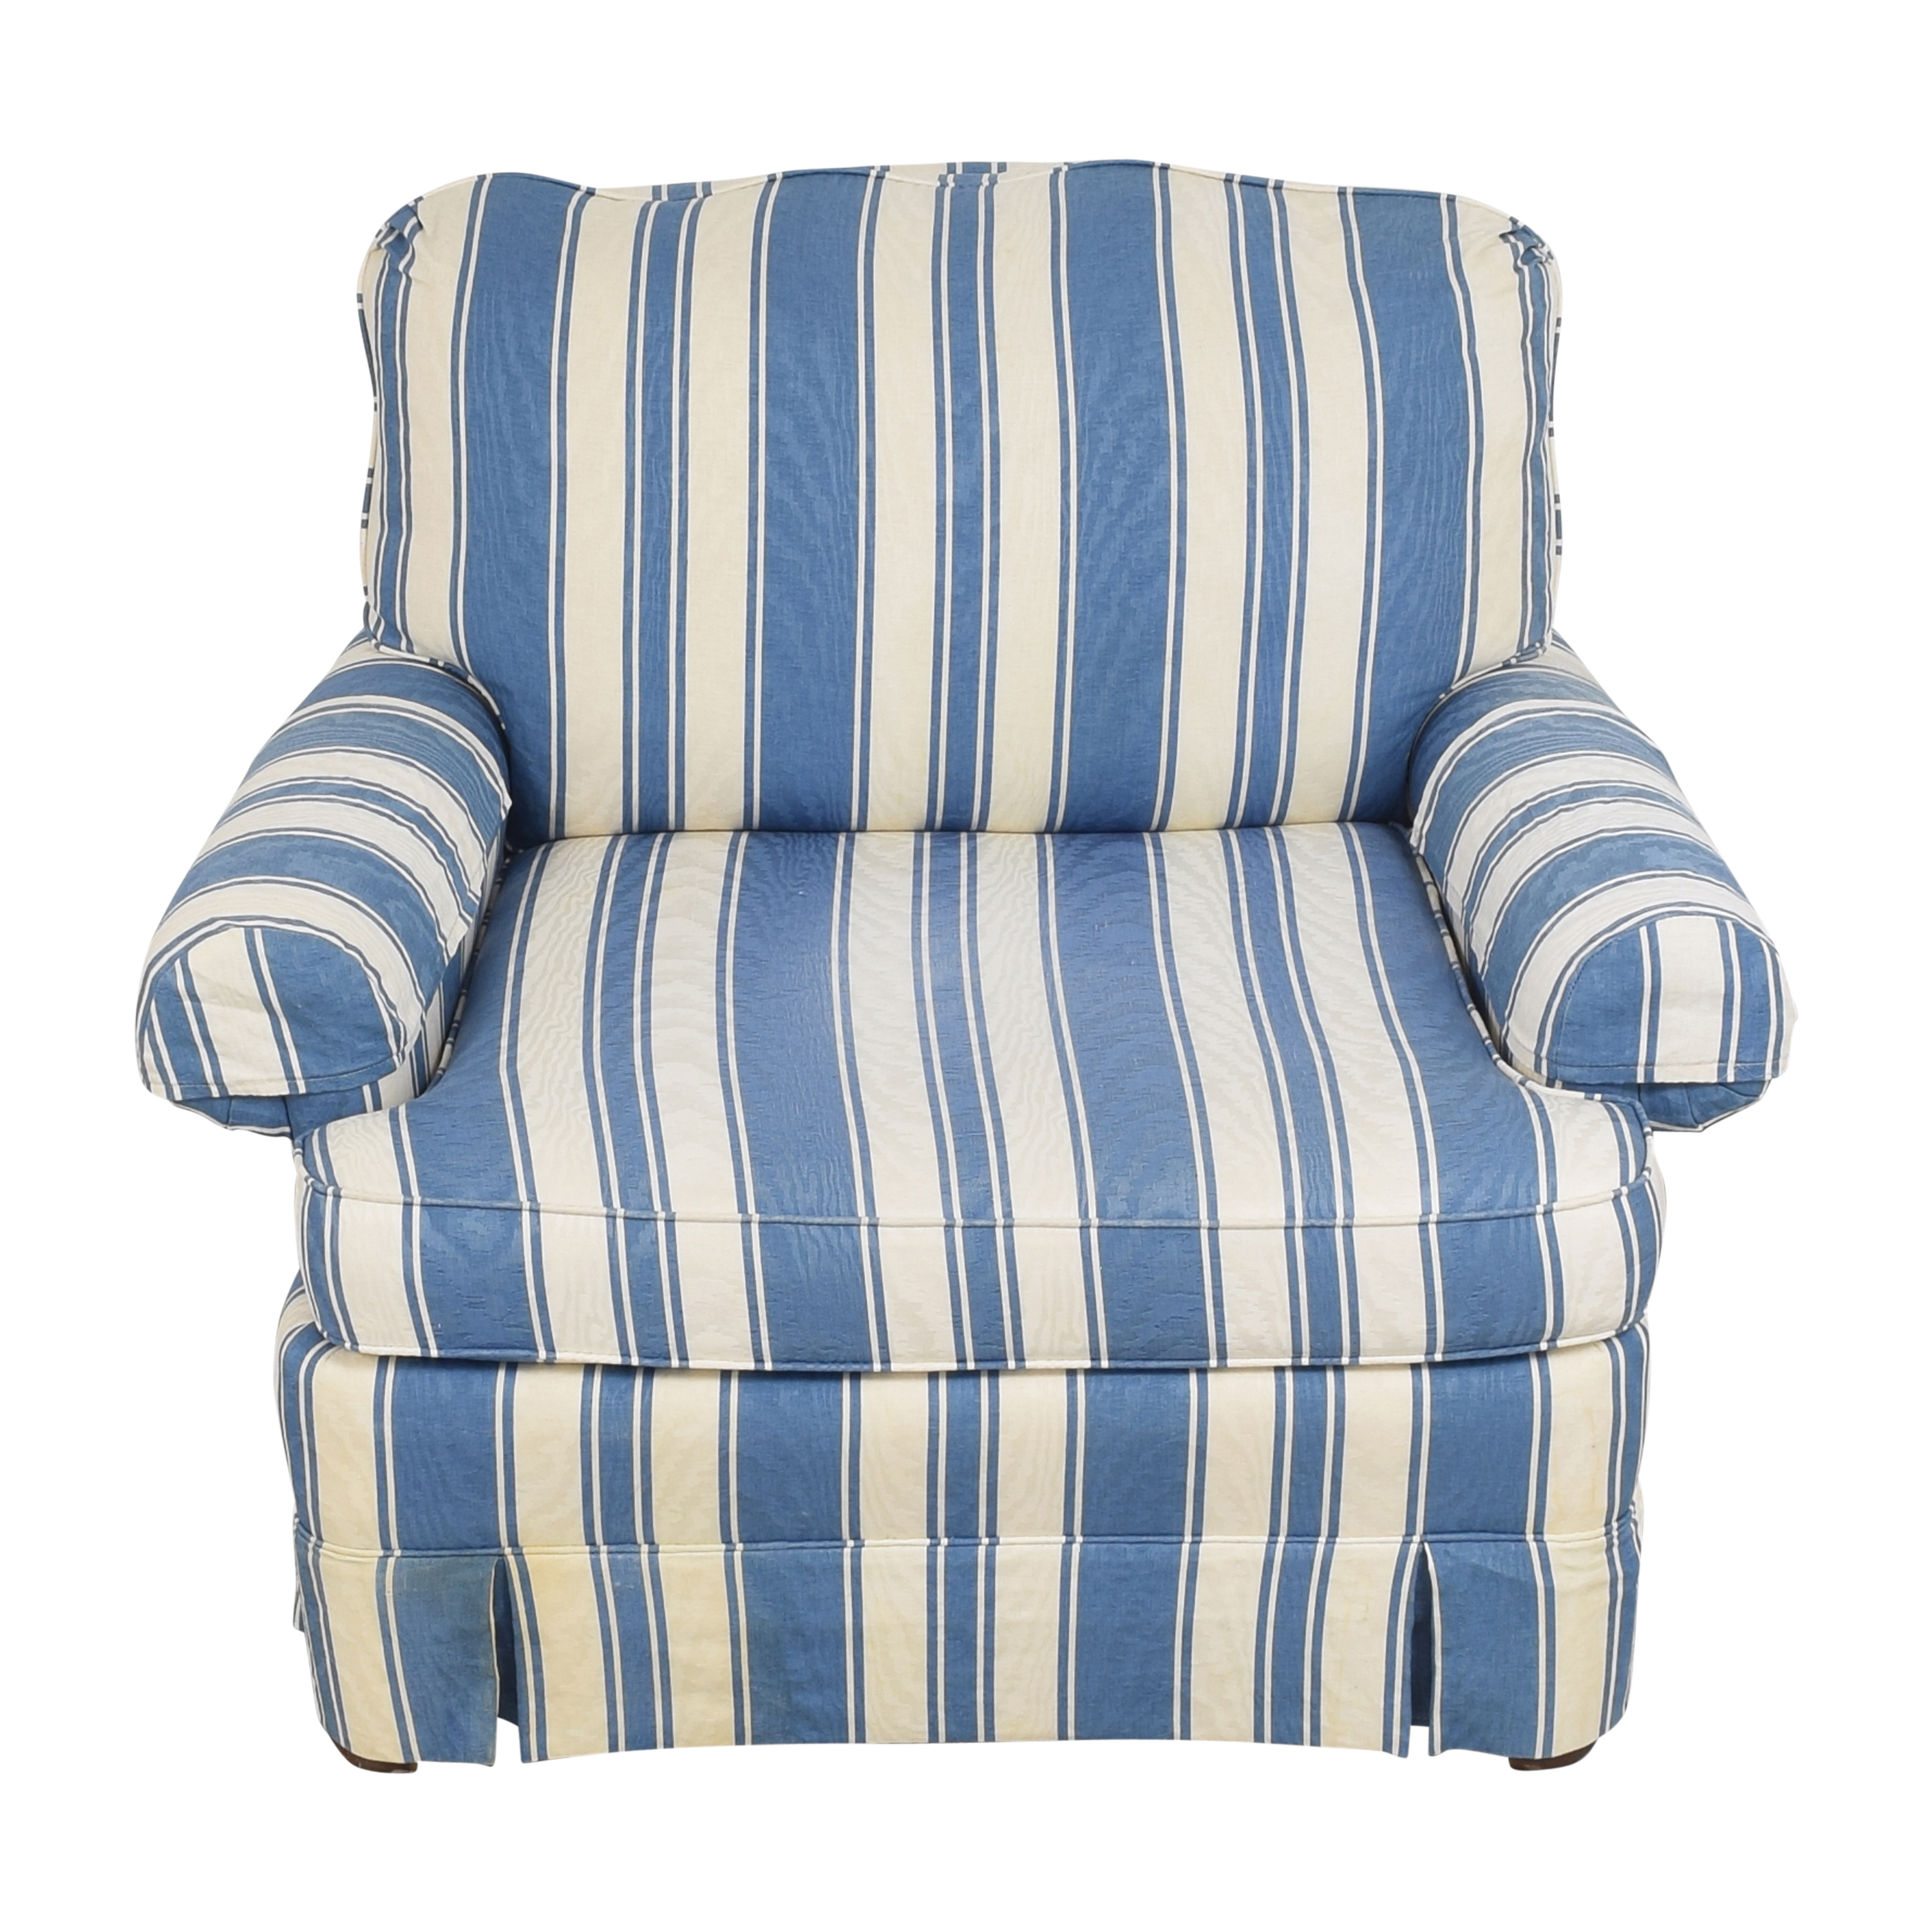 Clayton Marcus Clayton Marcus Striped Accent Chair second hand